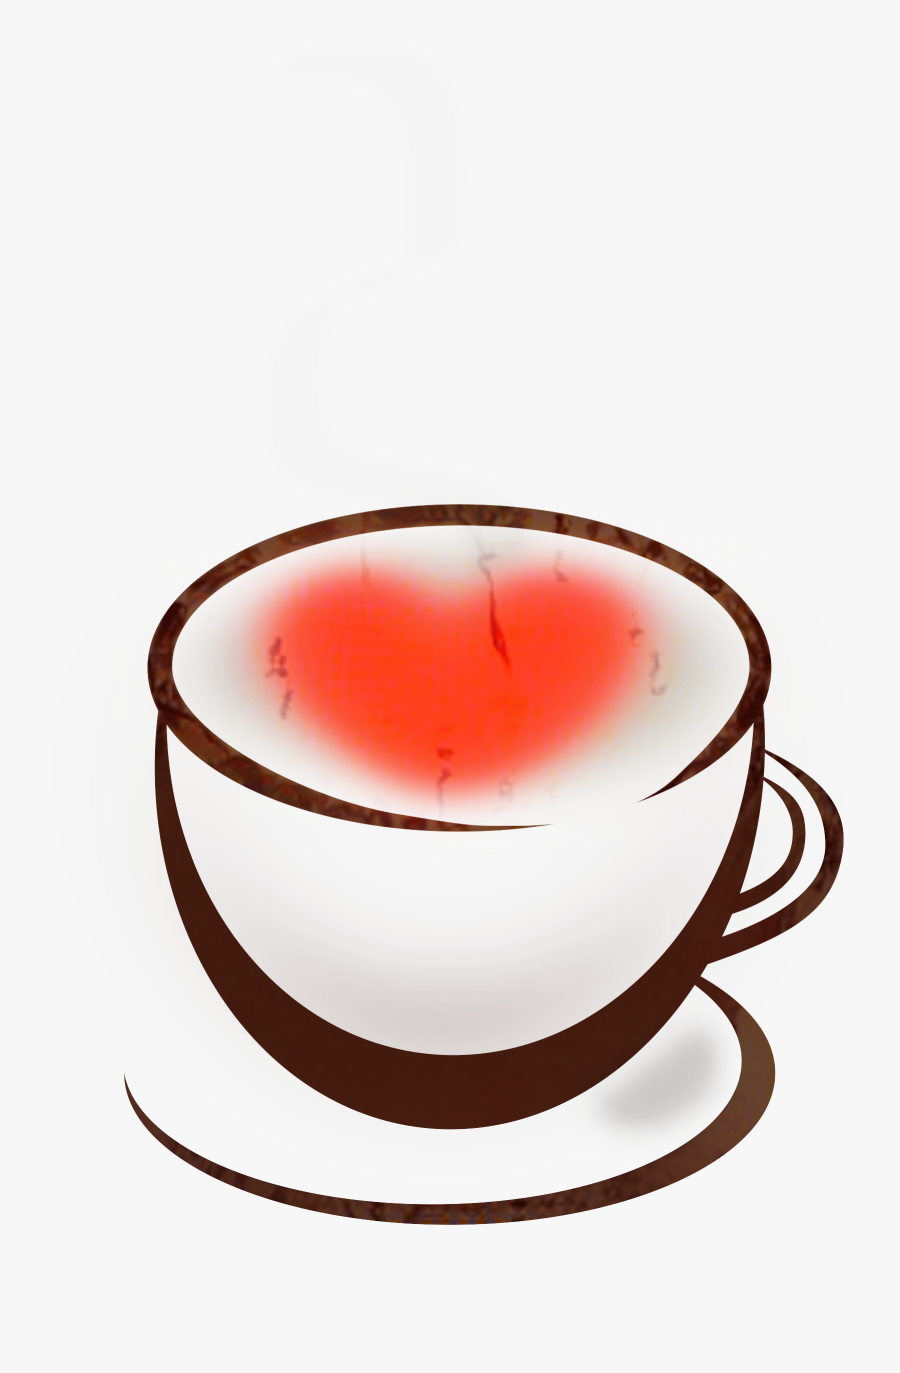 Coffee Clip Art Portable Network Graphics Transparency - Big Red Coffee Cup Clip Art, Transparent Clipart